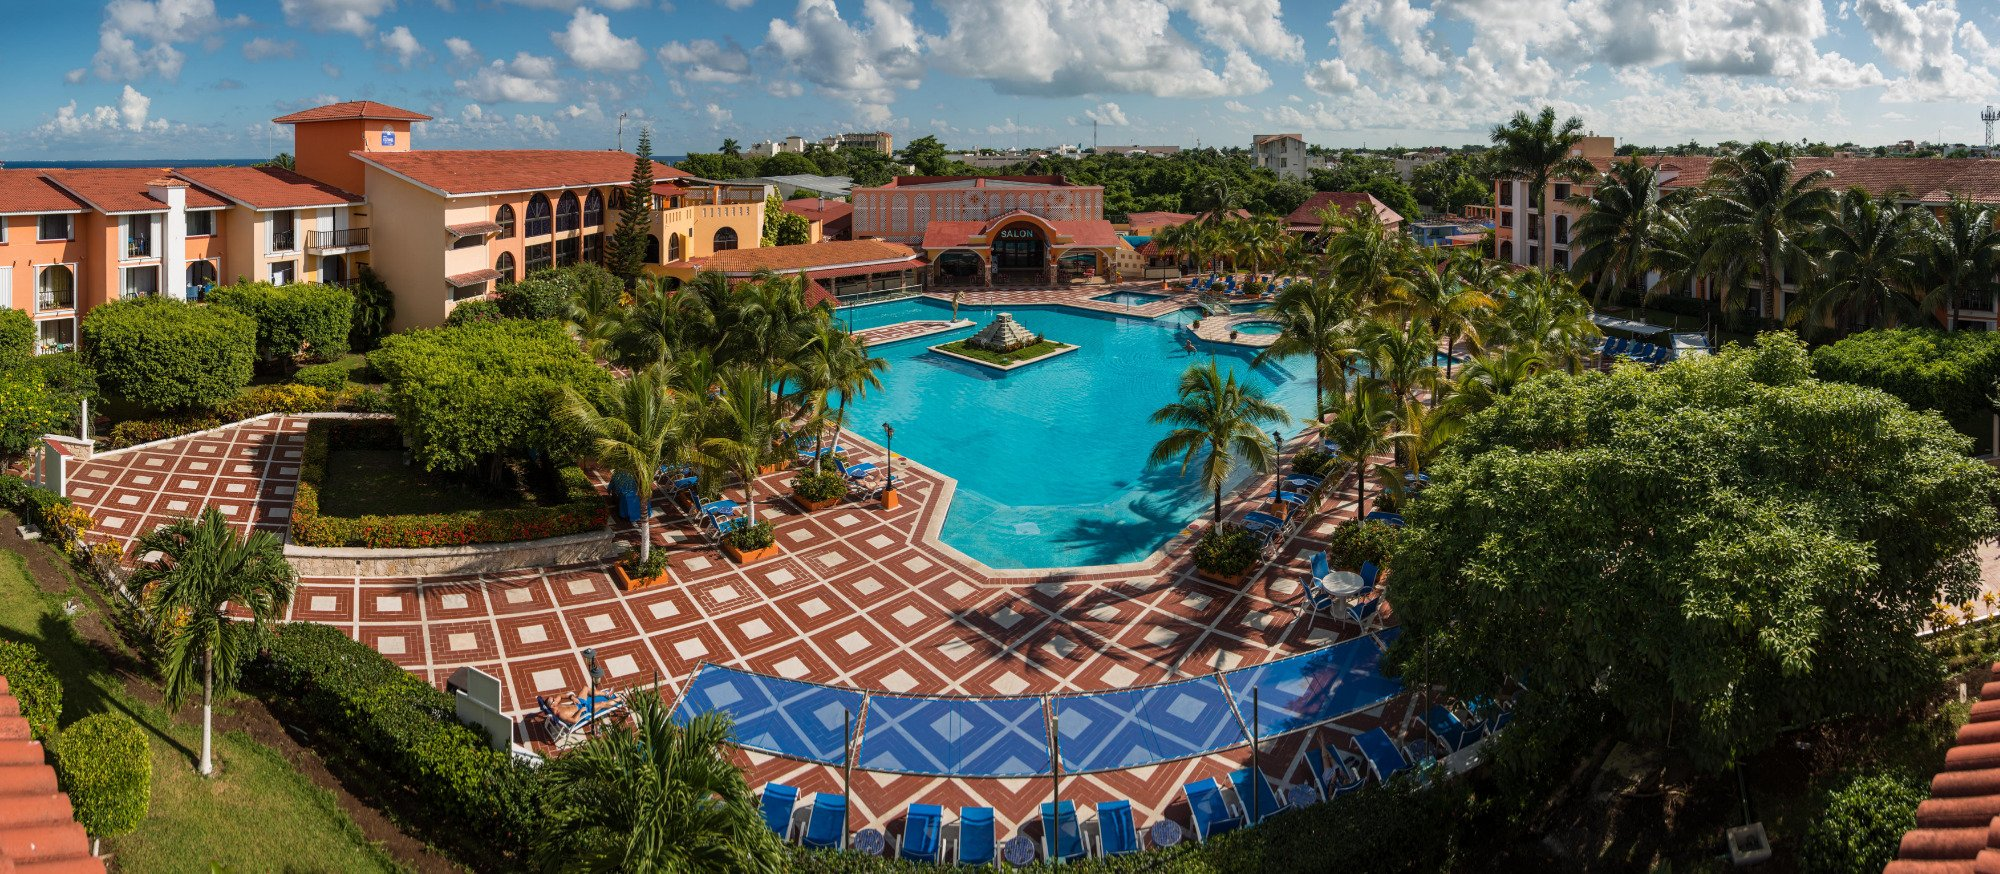 Hotel Cozumel and Resort